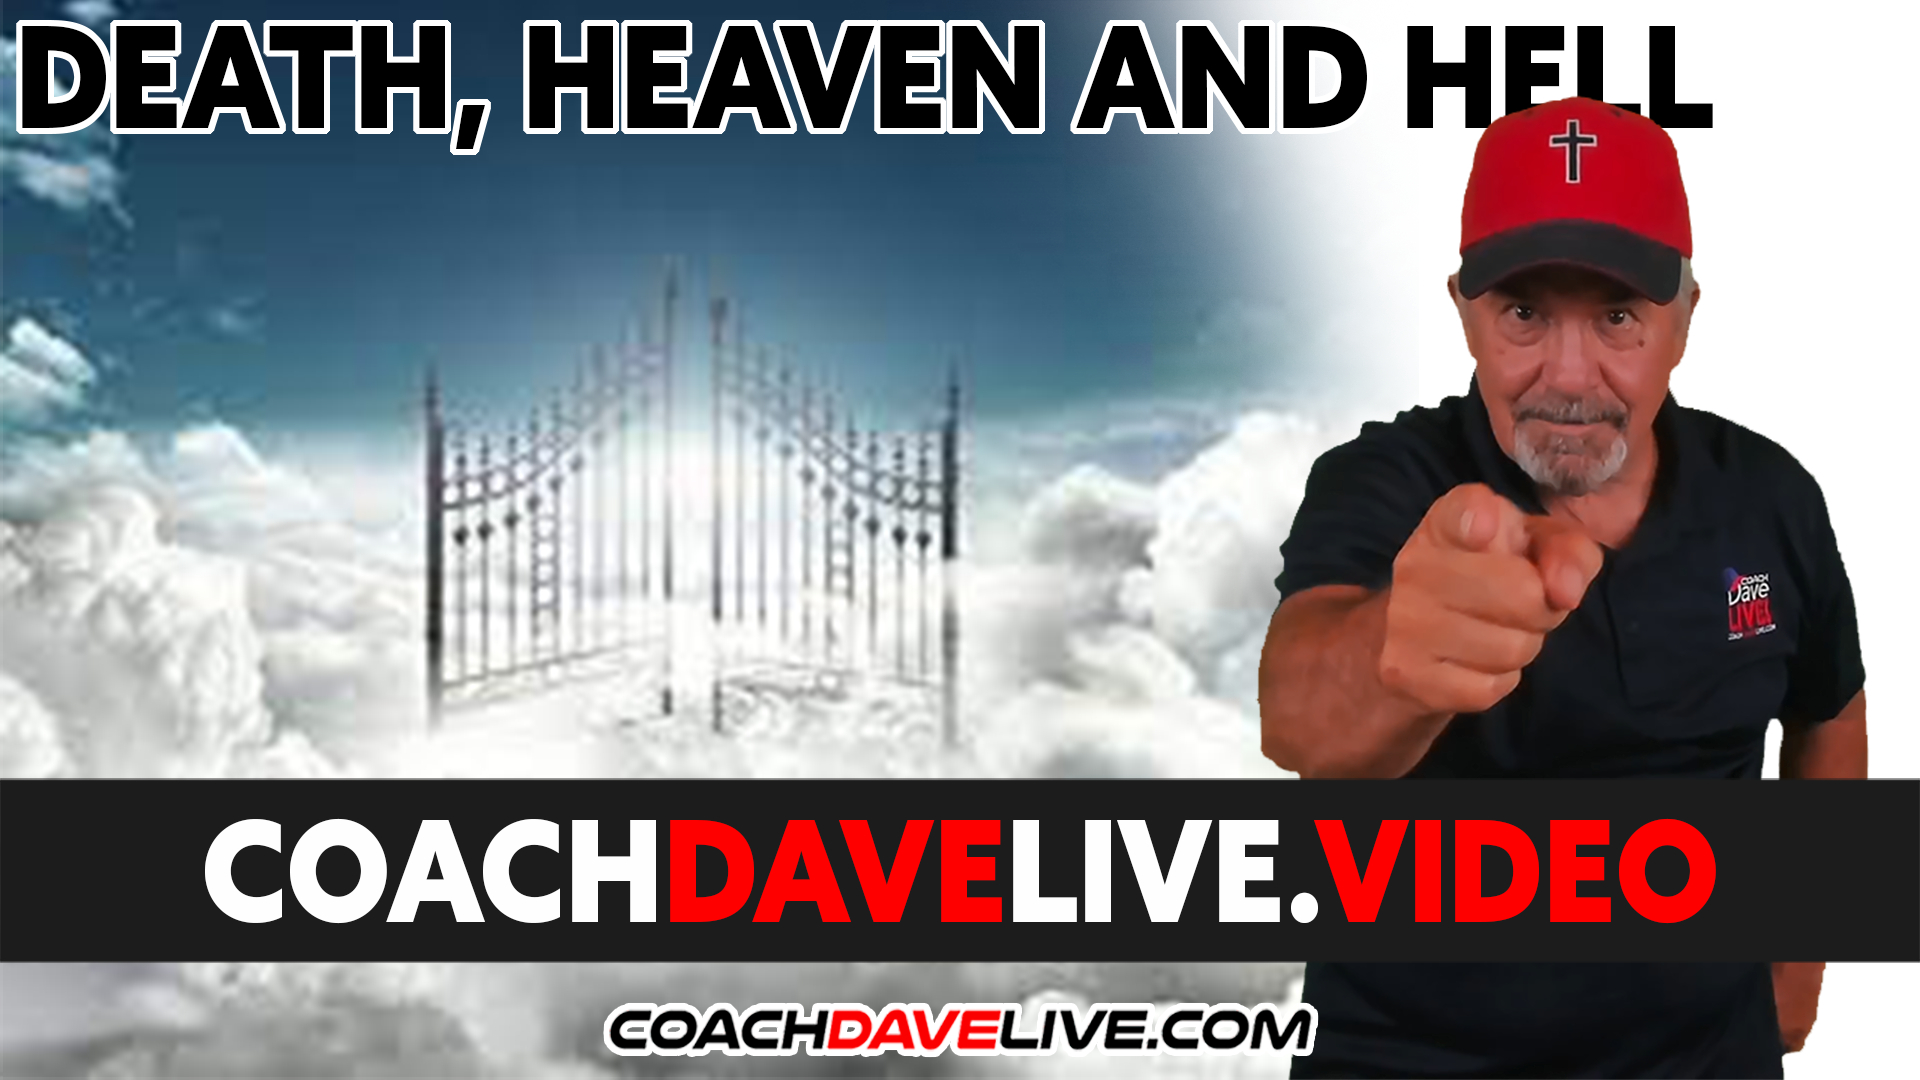 Coach Dave LIVE | 9-23-2021 | DEATH, HEAVEN AND HELL